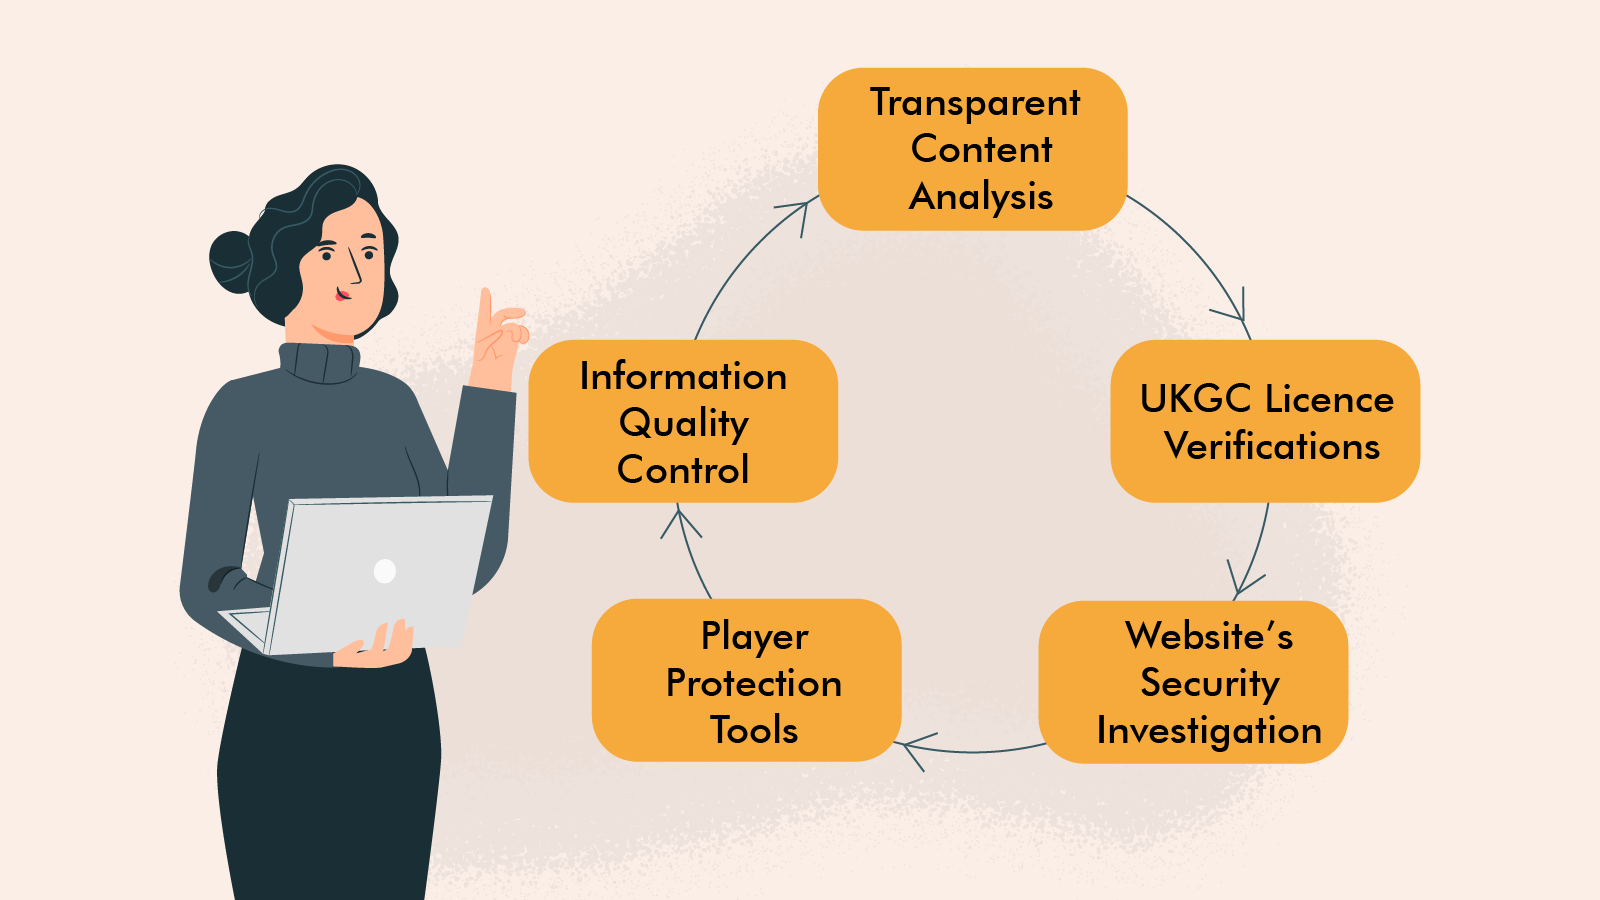 Our verification process include